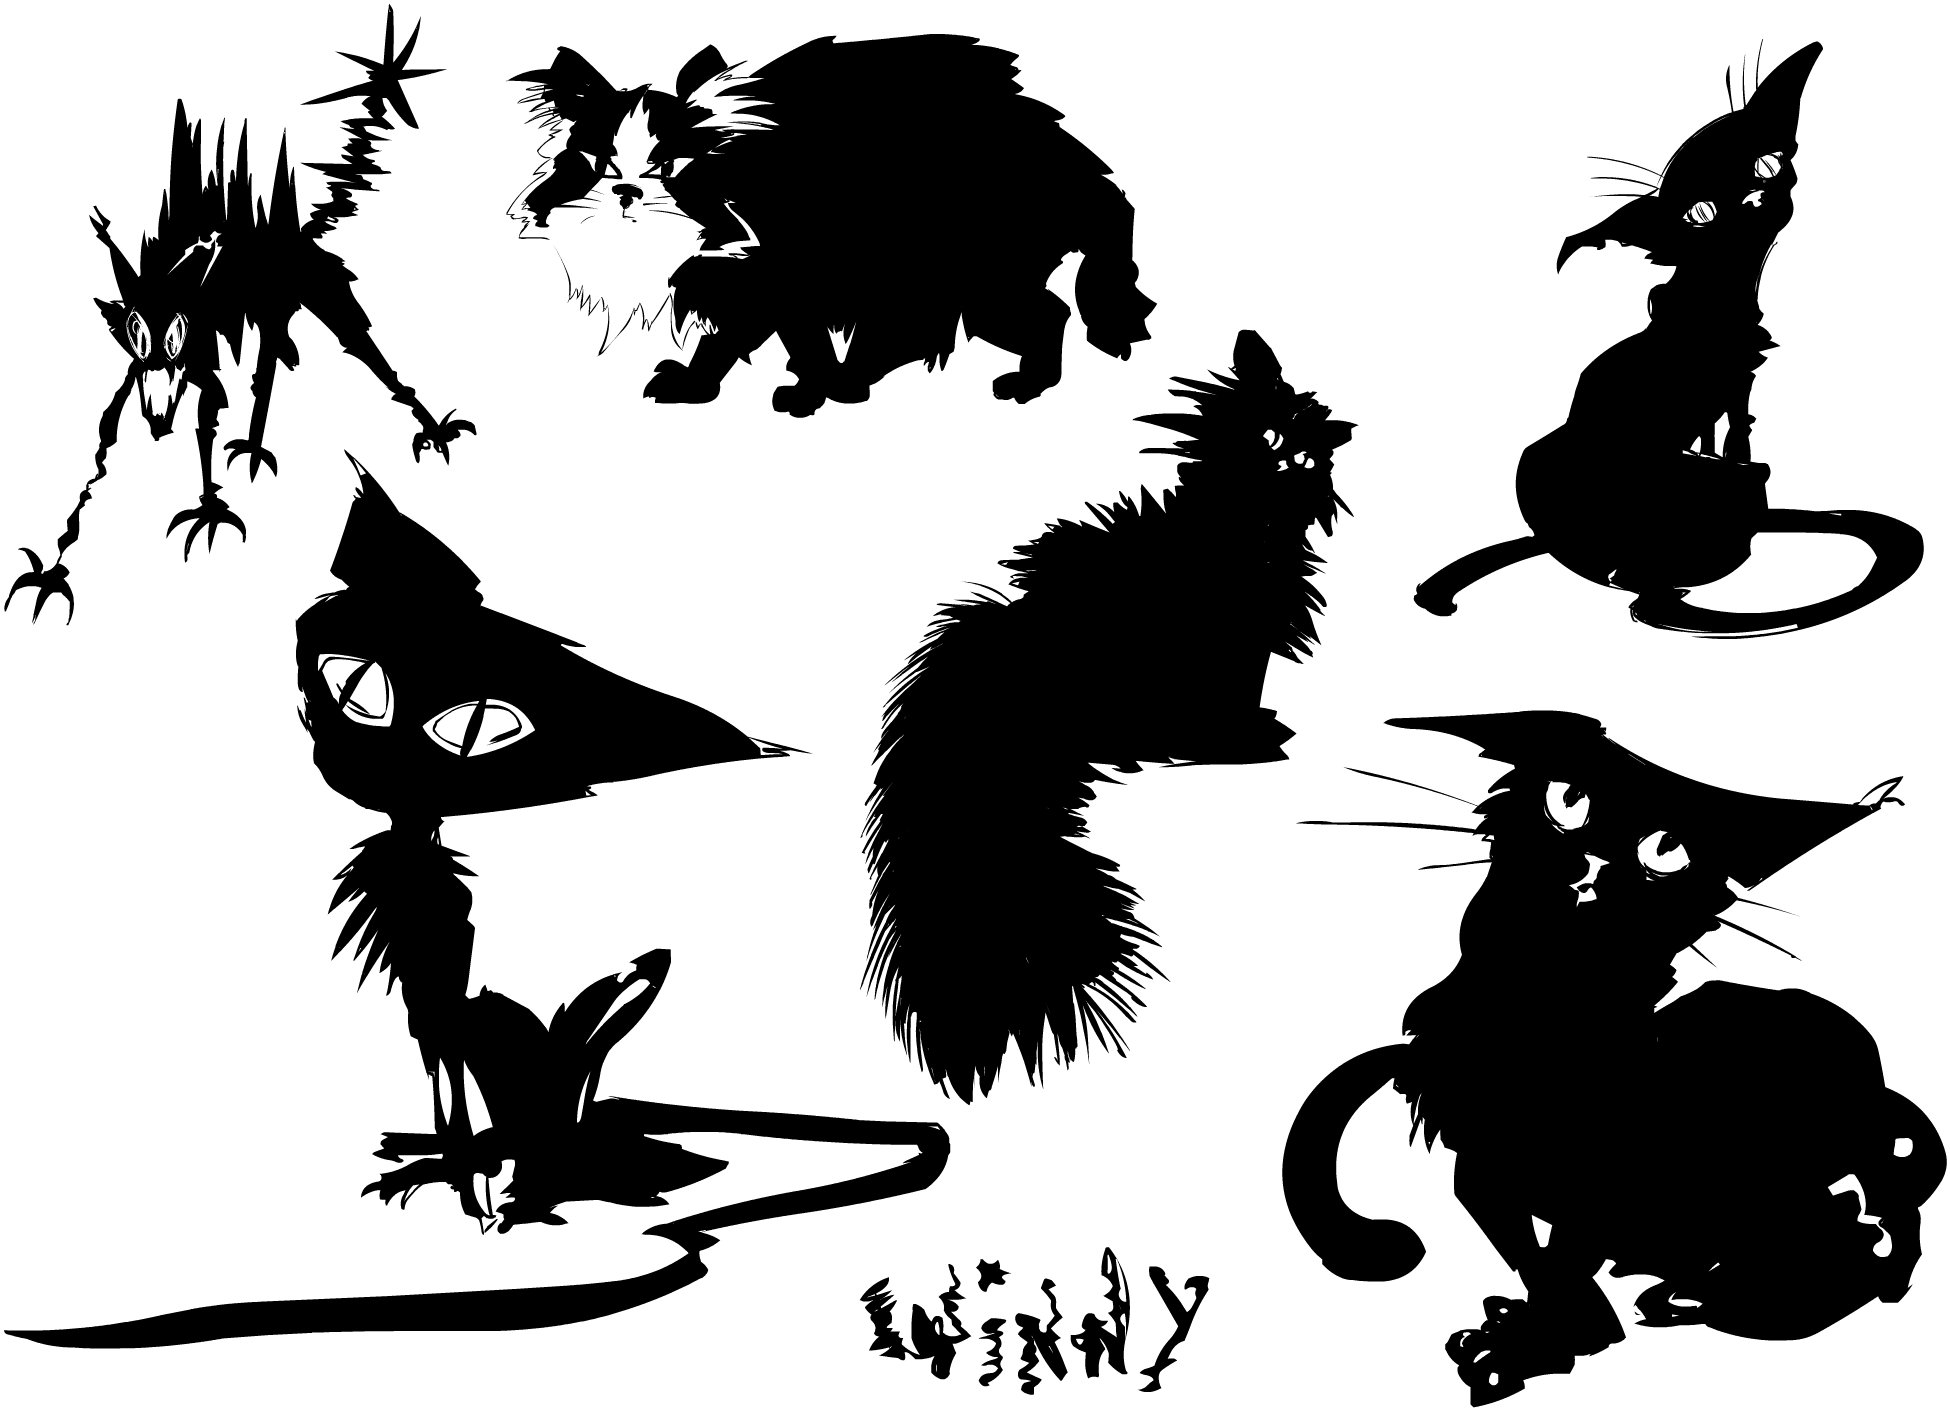 Dessin tatouage chat awesome tatouage chat with dessin tatouage chat best silhouette chat - Tatouage silhouette chat ...